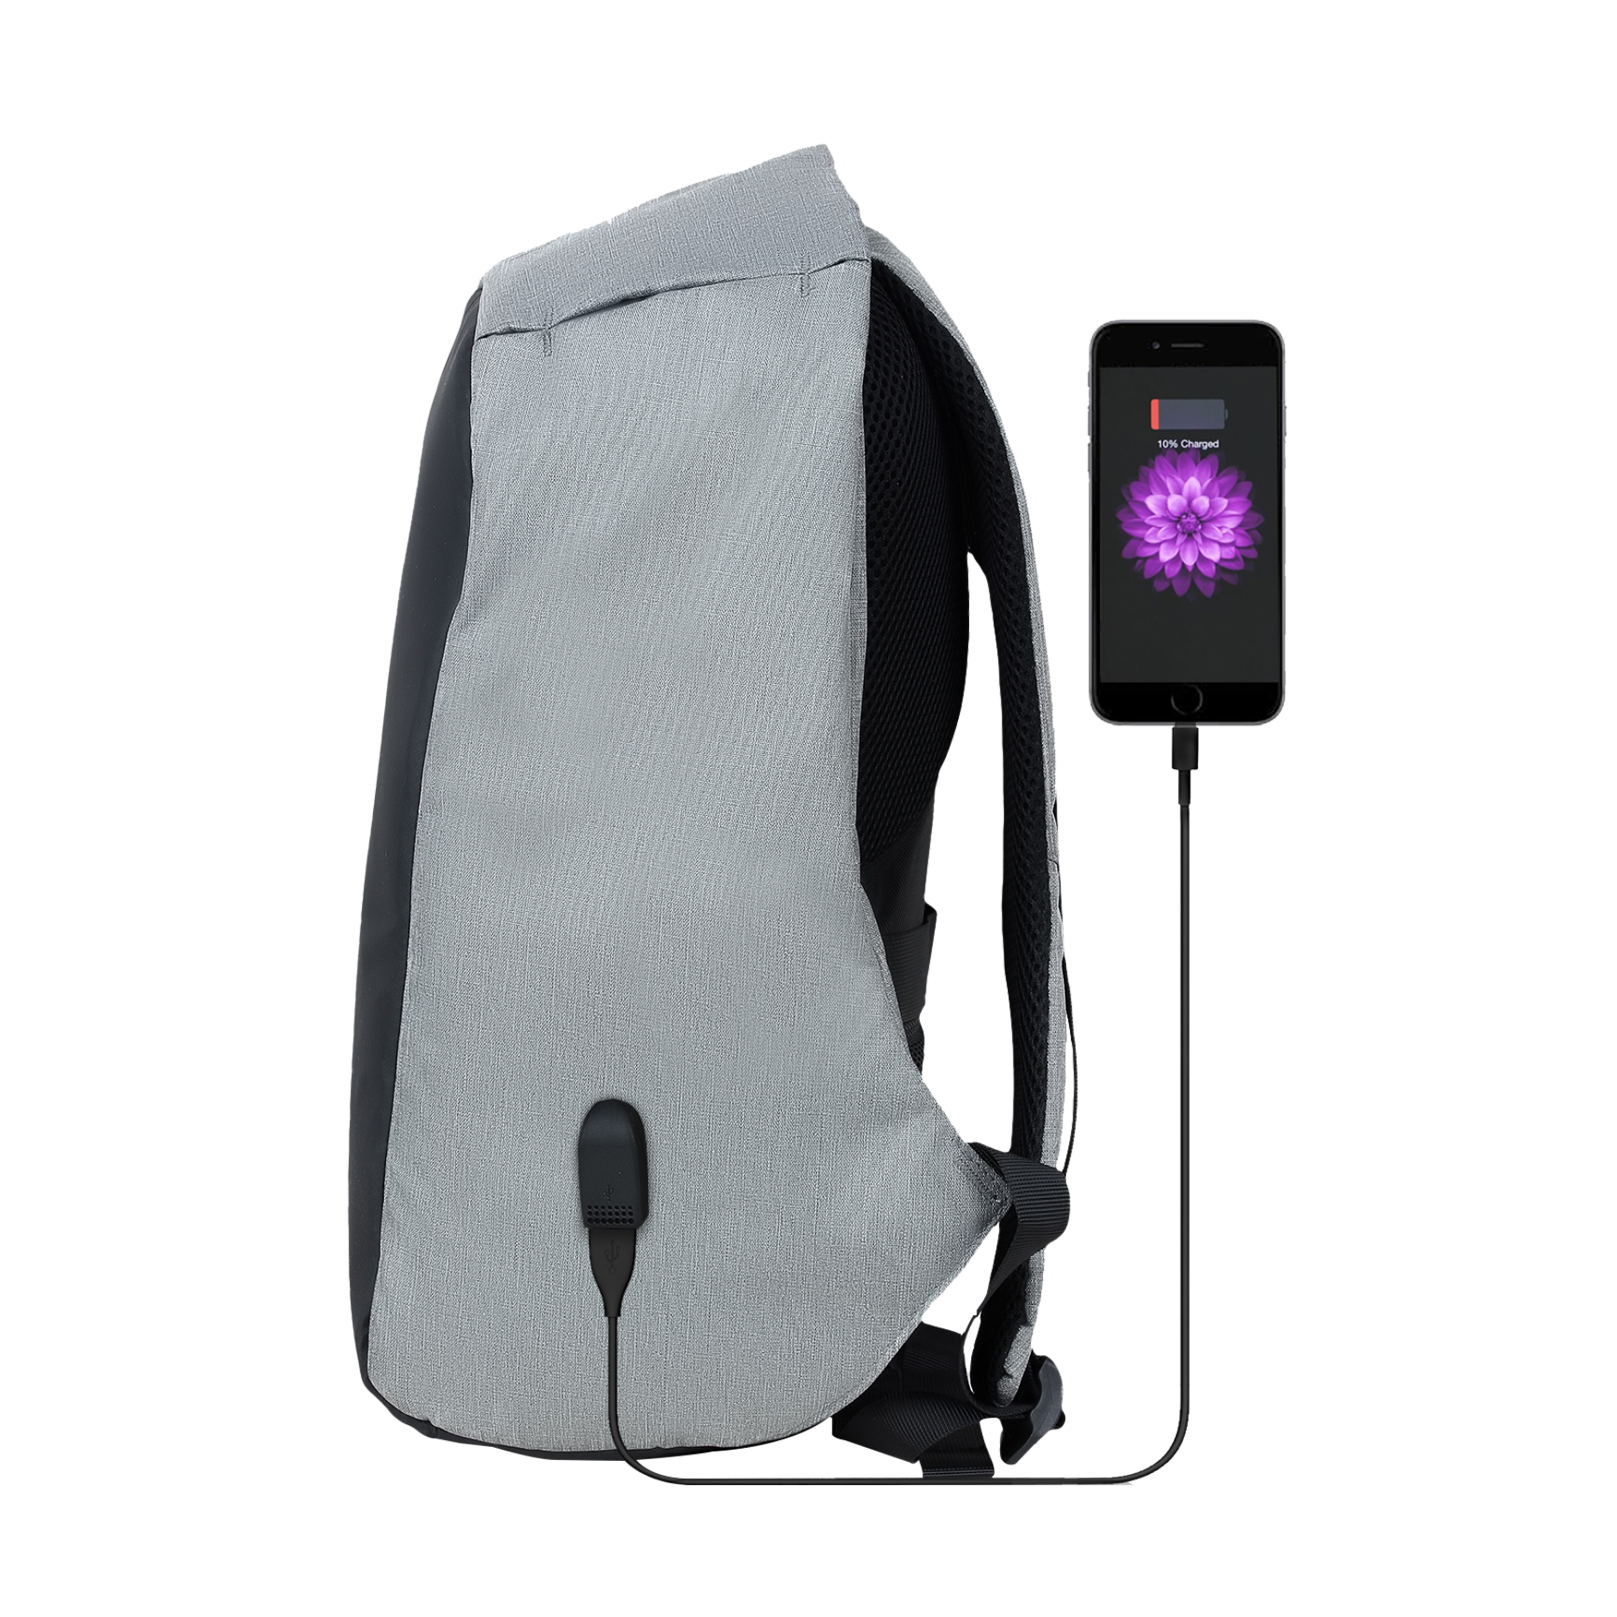 Trovo Anti Theft Laptop Backpack Champ Lite TLB-80 - Grey